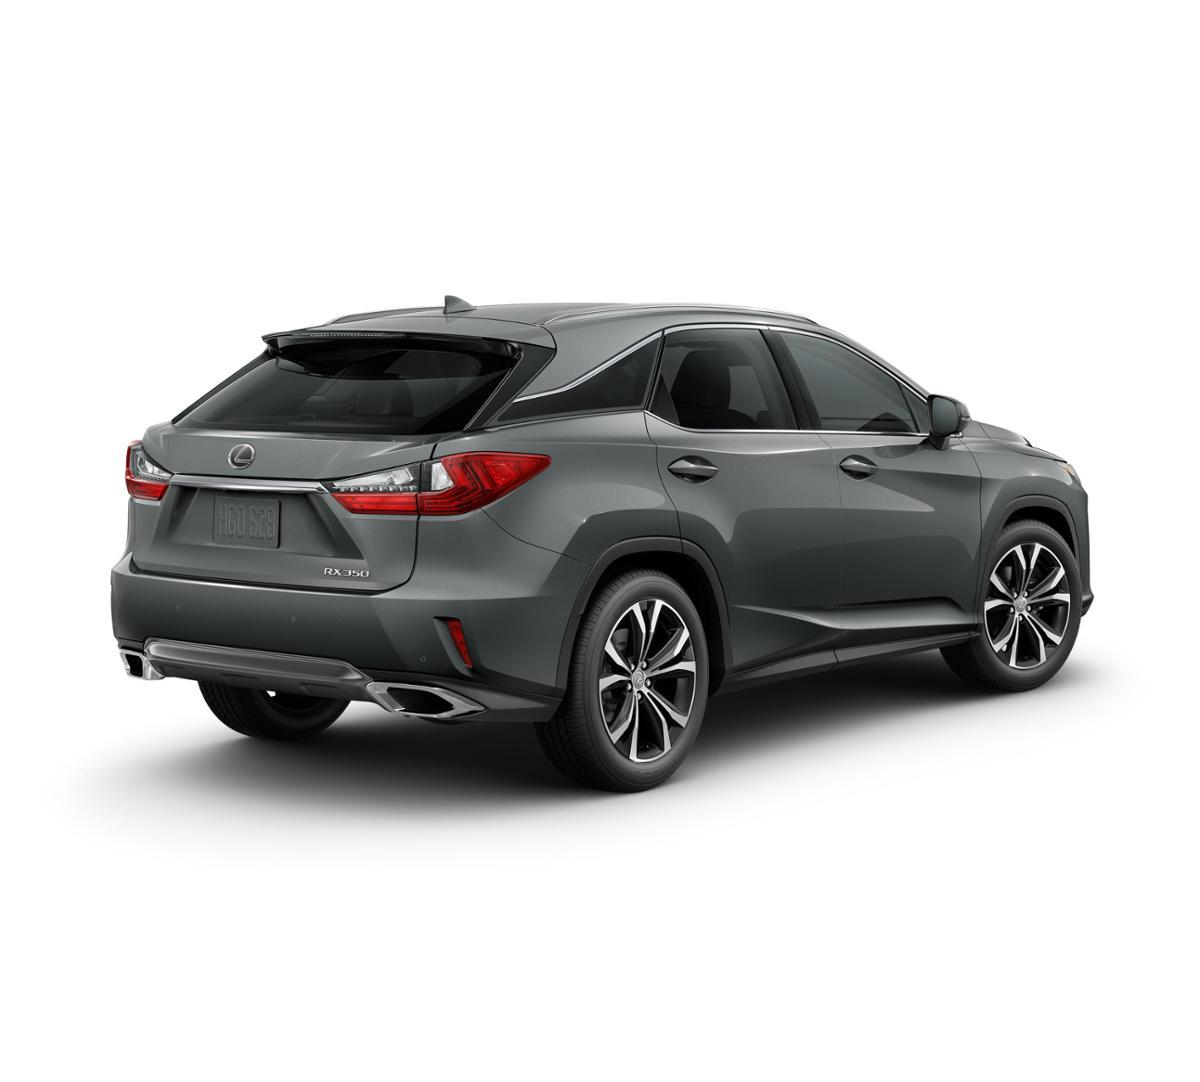 2018 nebula gray pearl lexus rx 350 for sale in san rafael 2t2zzmca4jc102039 lexus of marin. Black Bedroom Furniture Sets. Home Design Ideas